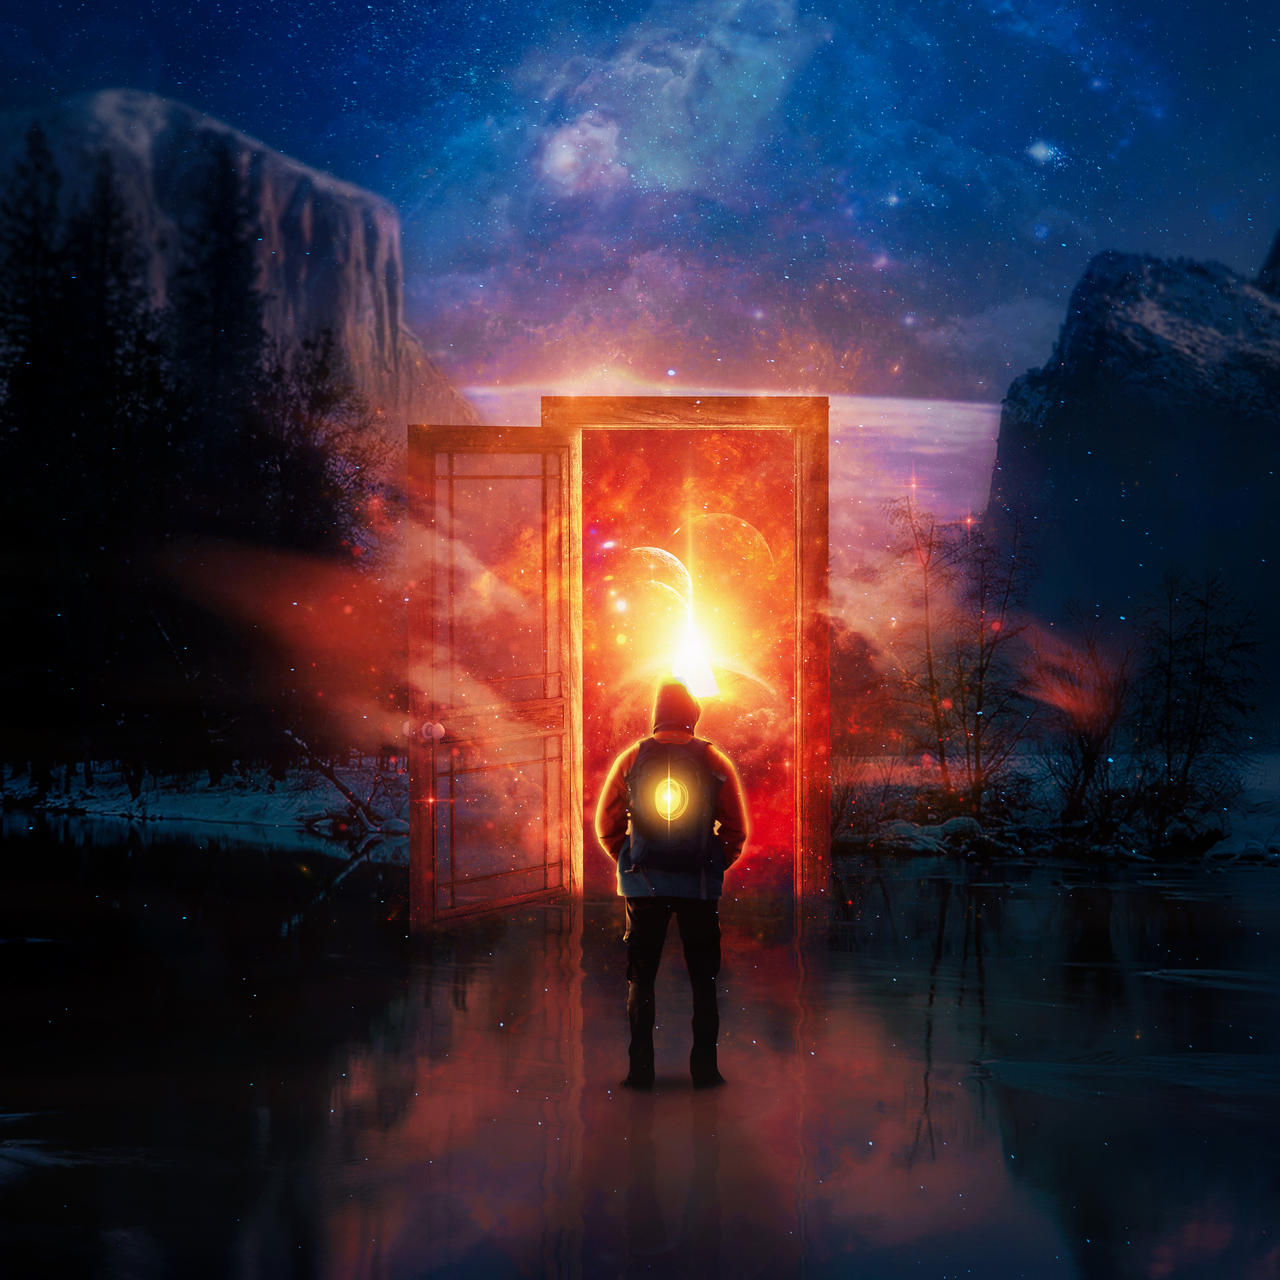 Doorway to the Unknown